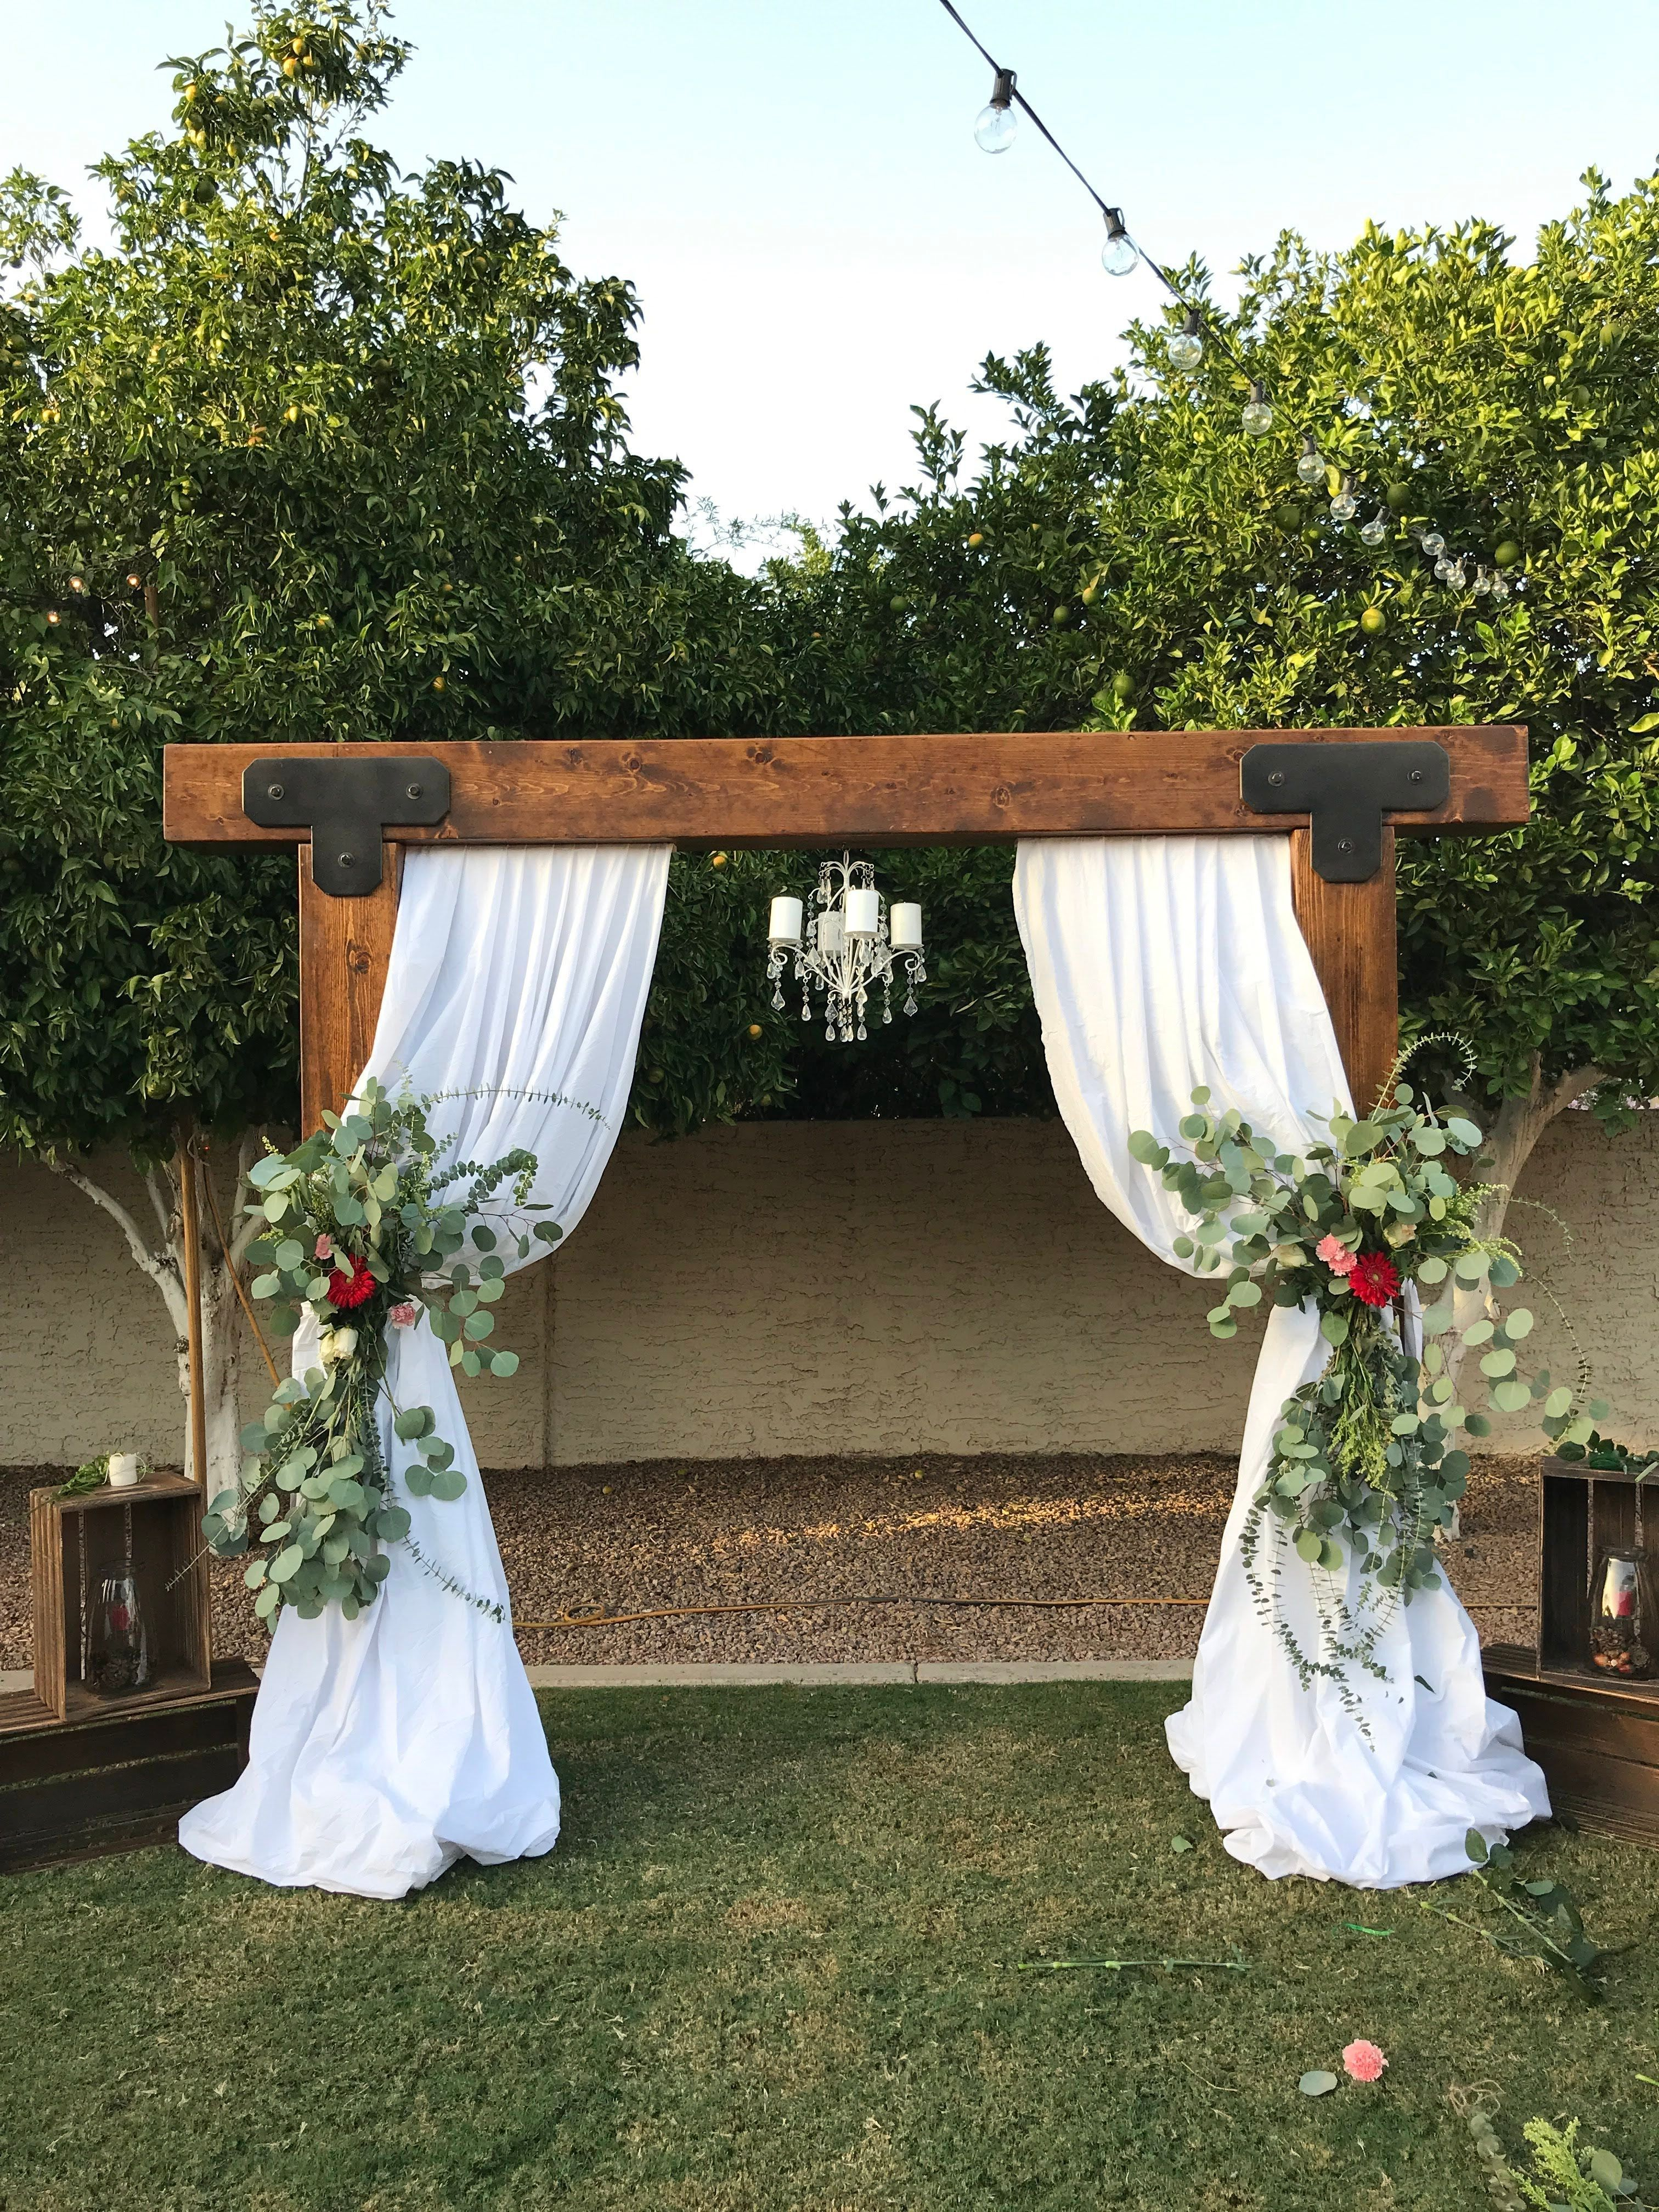 The Best Wedding Ceremony Arches Wood N Crate Designs In 2020 Wedding Arch Rental Wooden Wedding Arches Wedding Arch